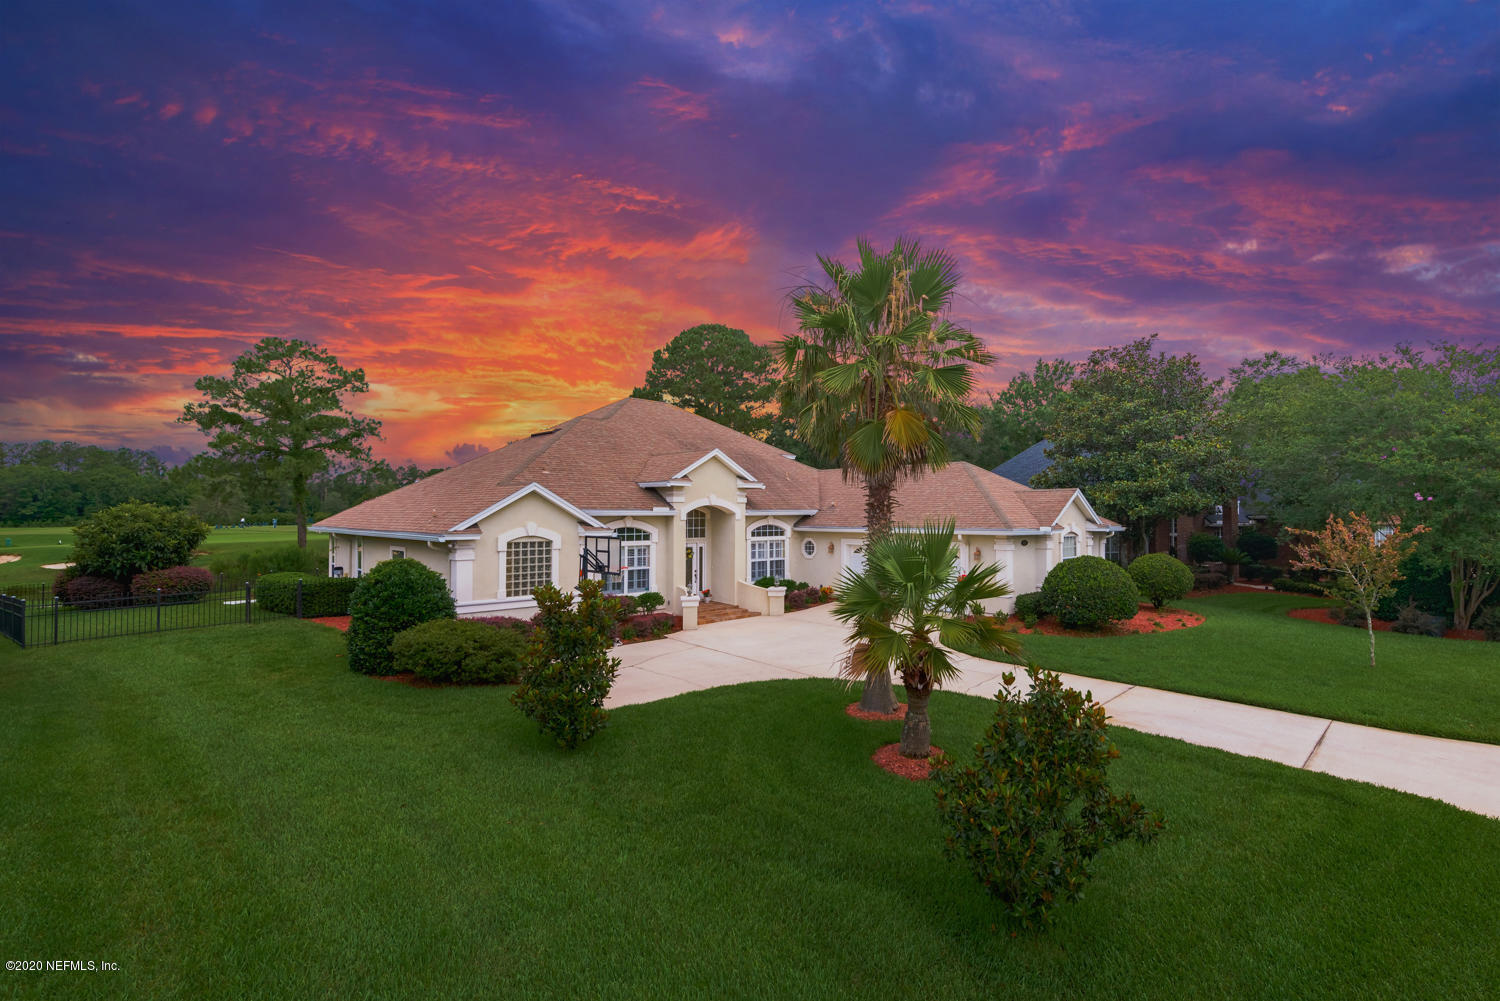 650 CHERRY GROVE, ORANGE PARK, FLORIDA 32073, 5 Bedrooms Bedrooms, ,4 BathroomsBathrooms,Residential,For sale,CHERRY GROVE,1044120